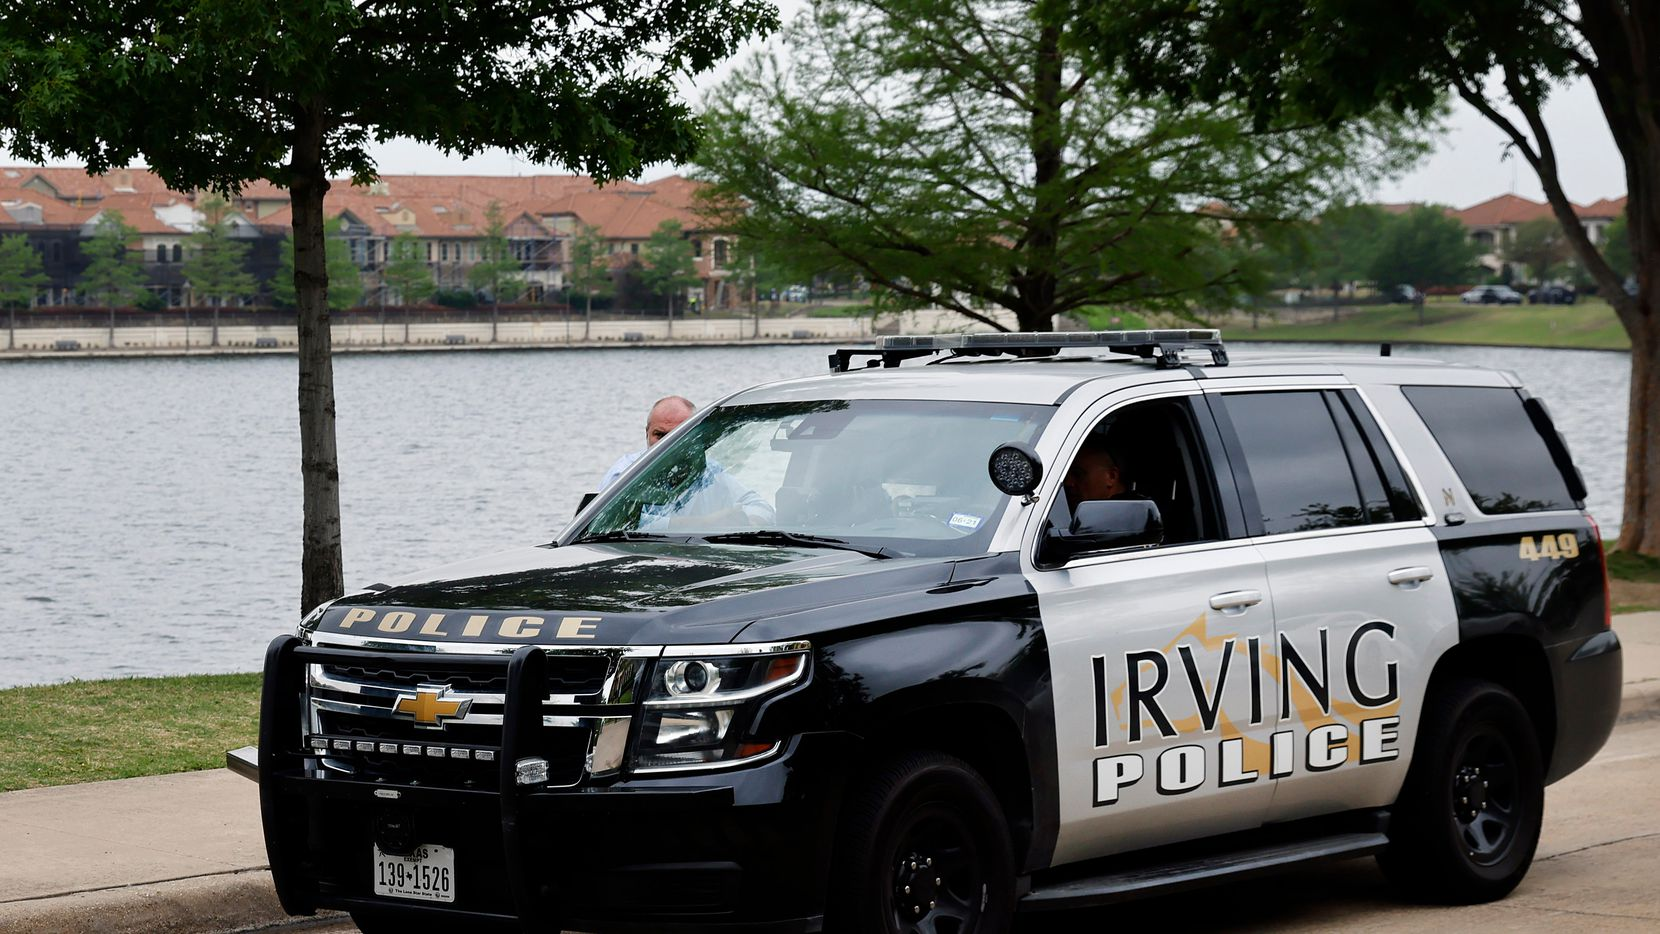 An Irving police vehicle is pictured in this file photo. Police have charged a 15-year-old with threatening to use a firearm following 'terroristic threat' against Nimitz High School.